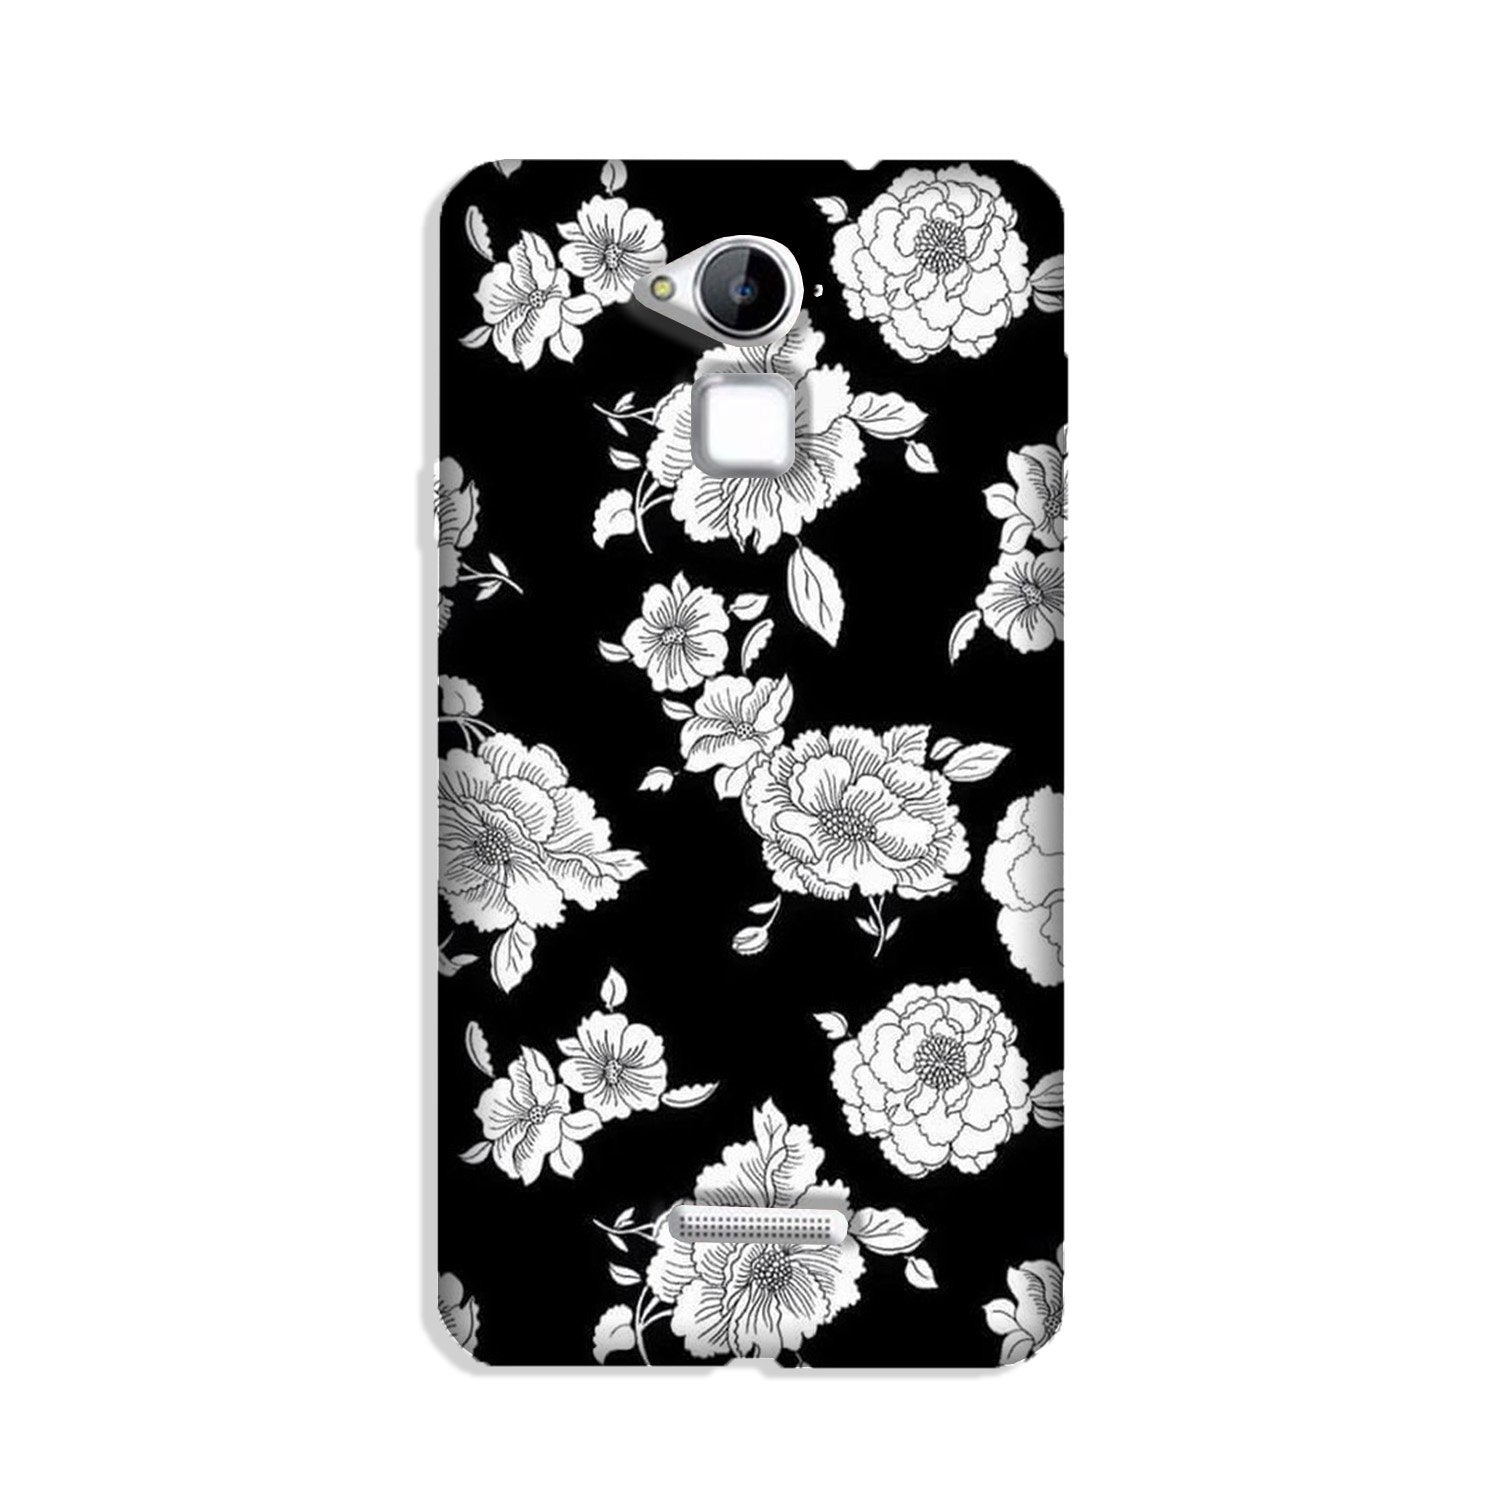 White flowers Black Background Case for Coolpad Note 3